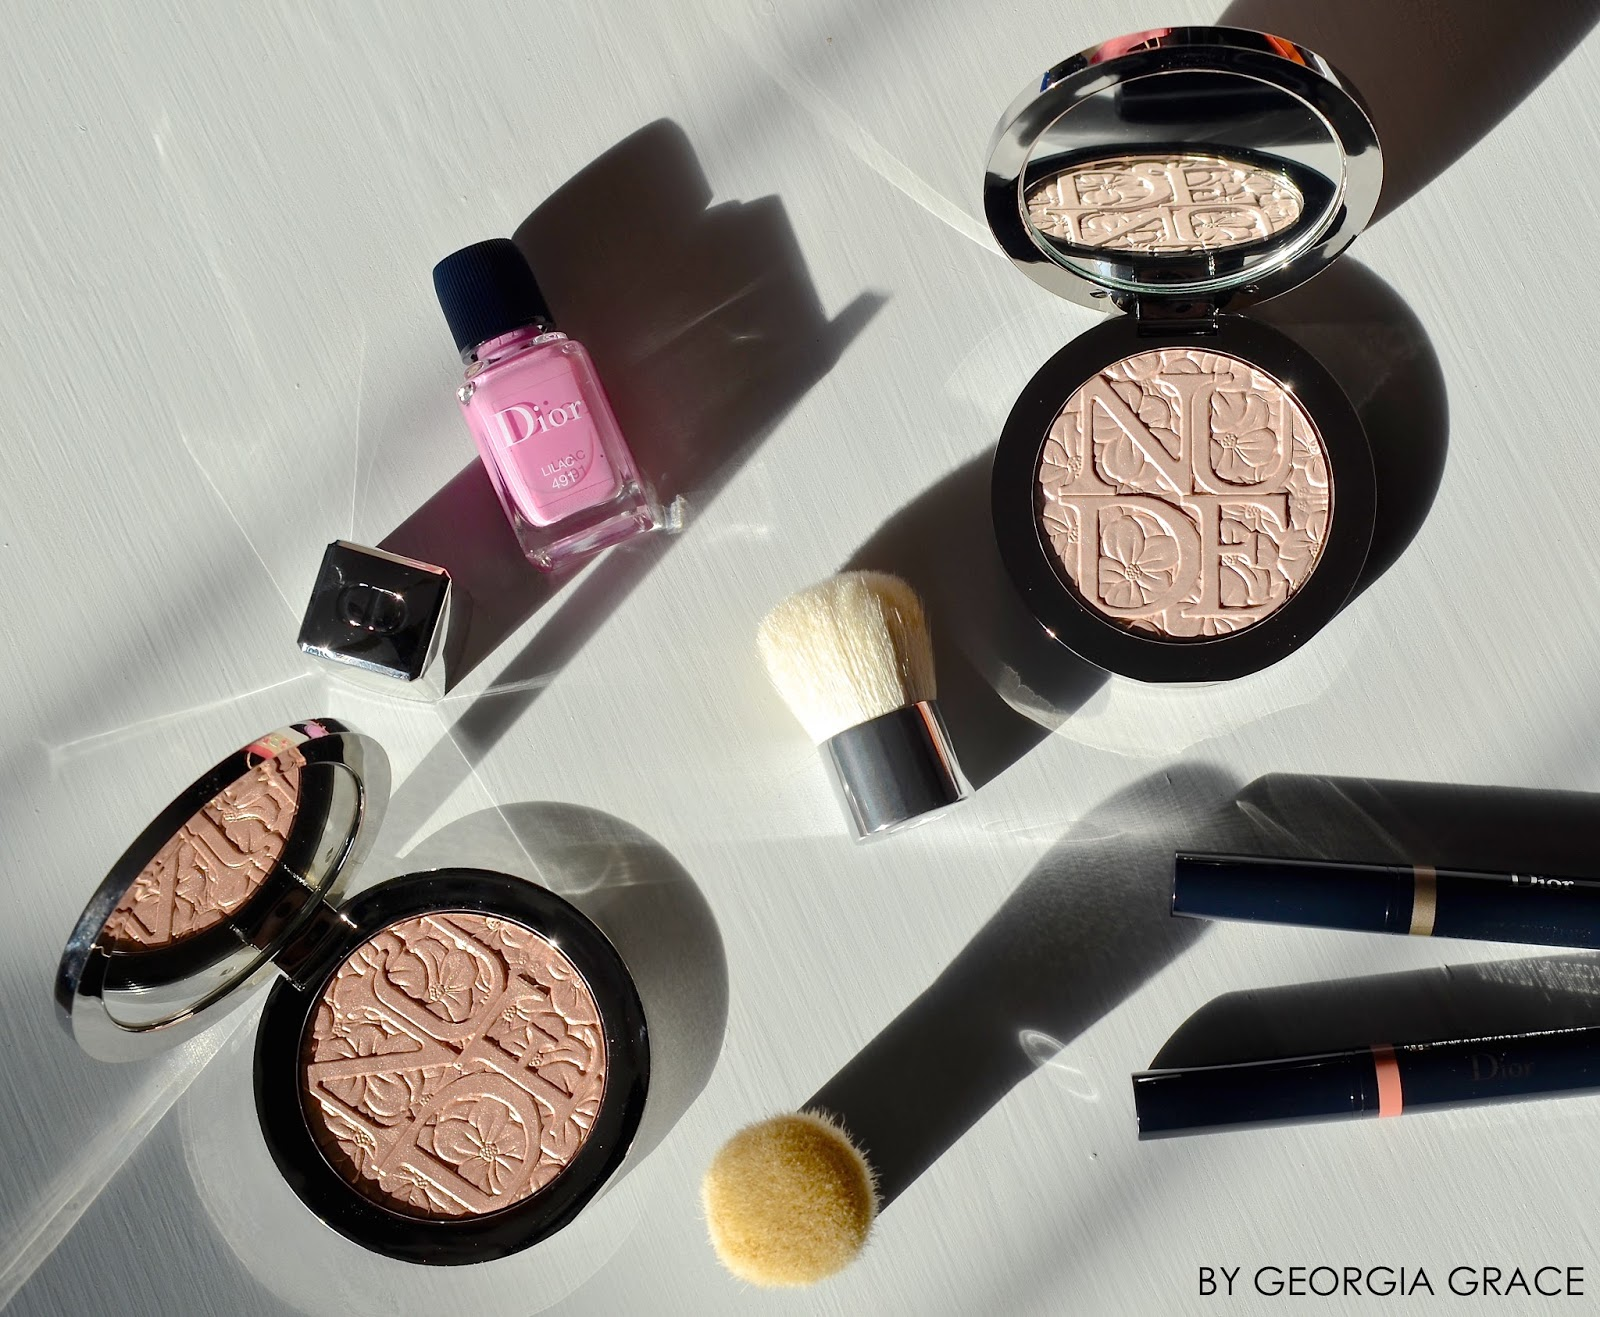 Dior Spring 2016 Makeup Swatches & Review Glowing Gardens Highlighter Illuminator Illuminating Powder Glowing Nude Pink